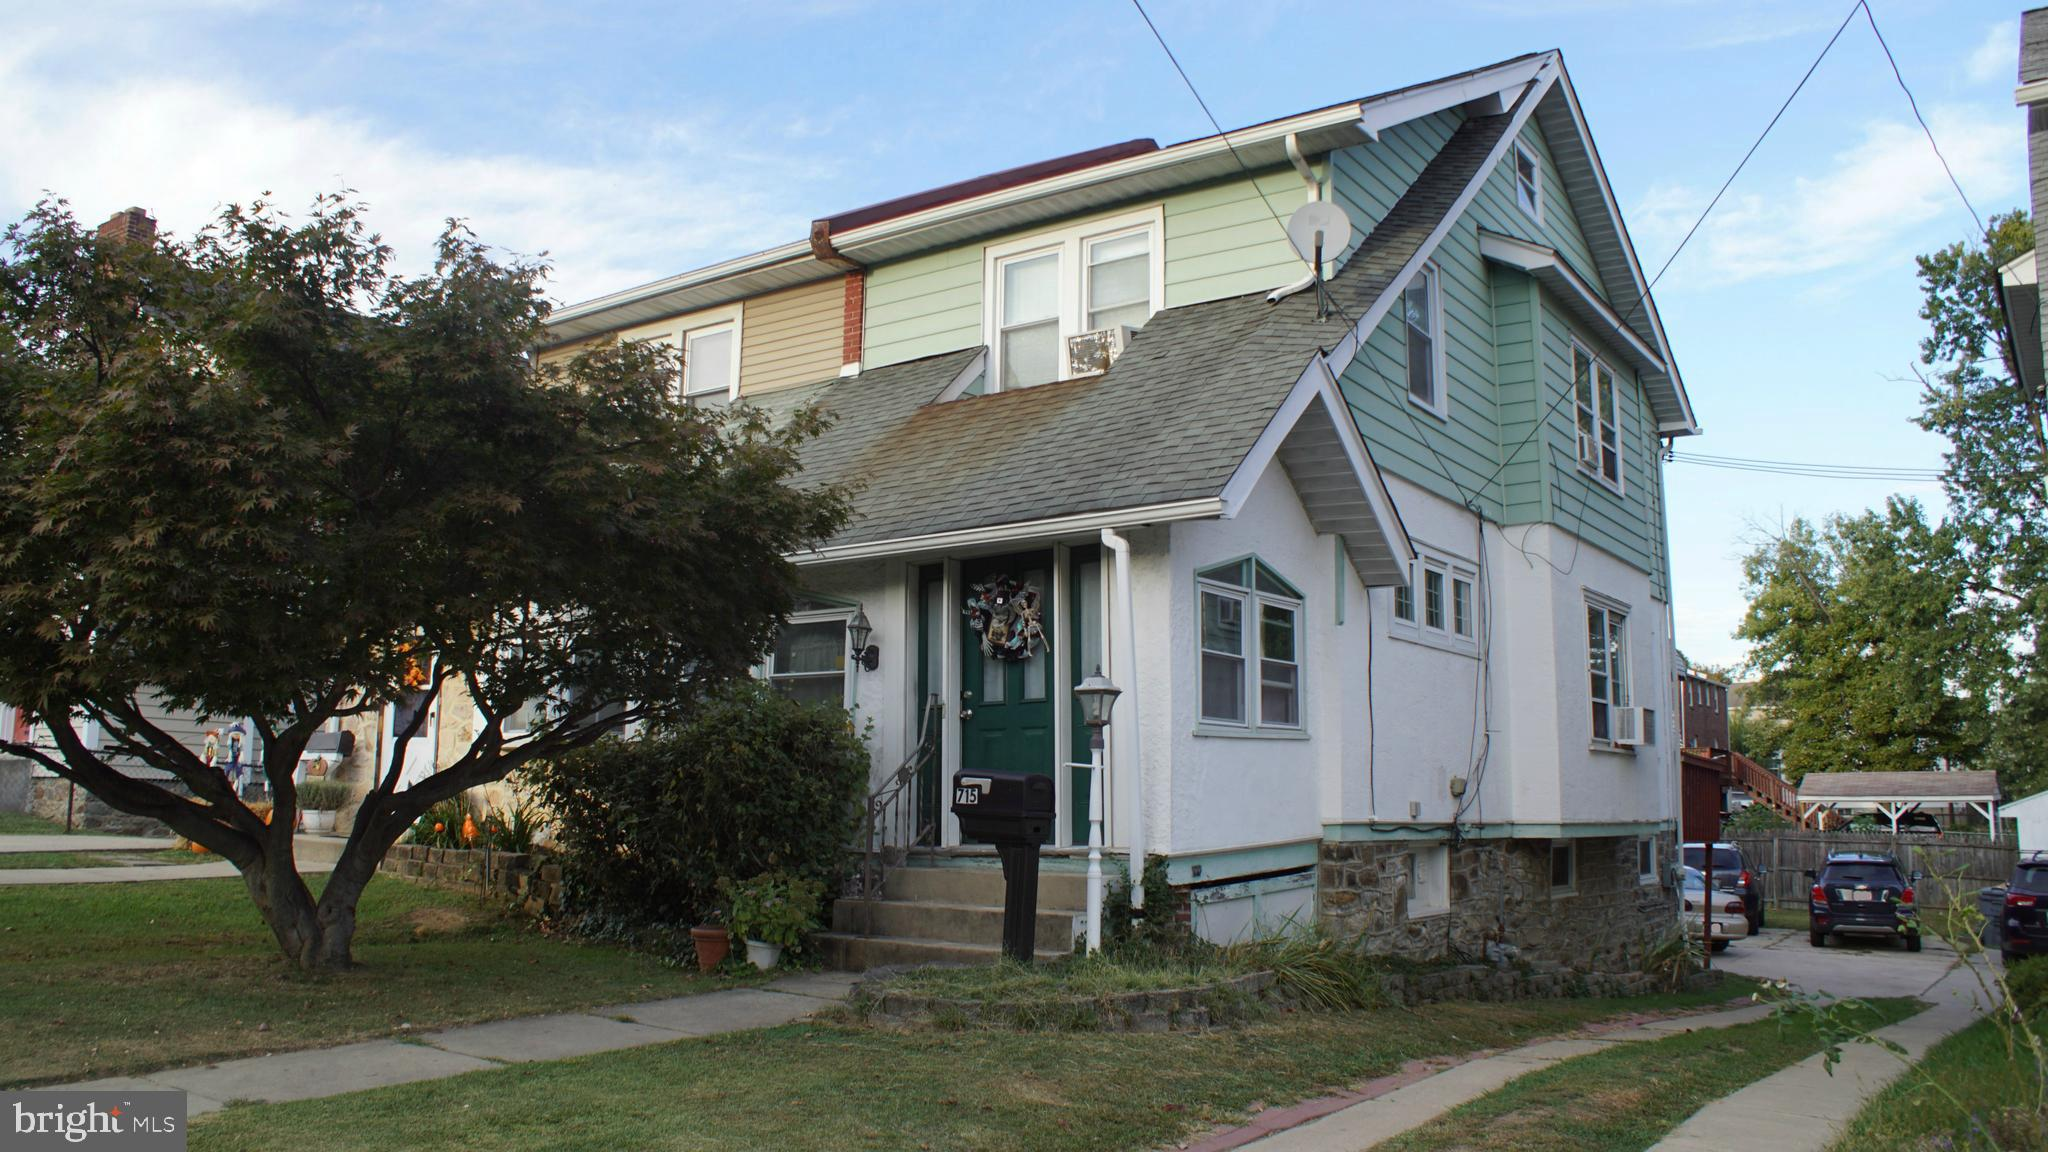 715 SUMMIT AVENUE, PROSPECT PARK, PA 19076